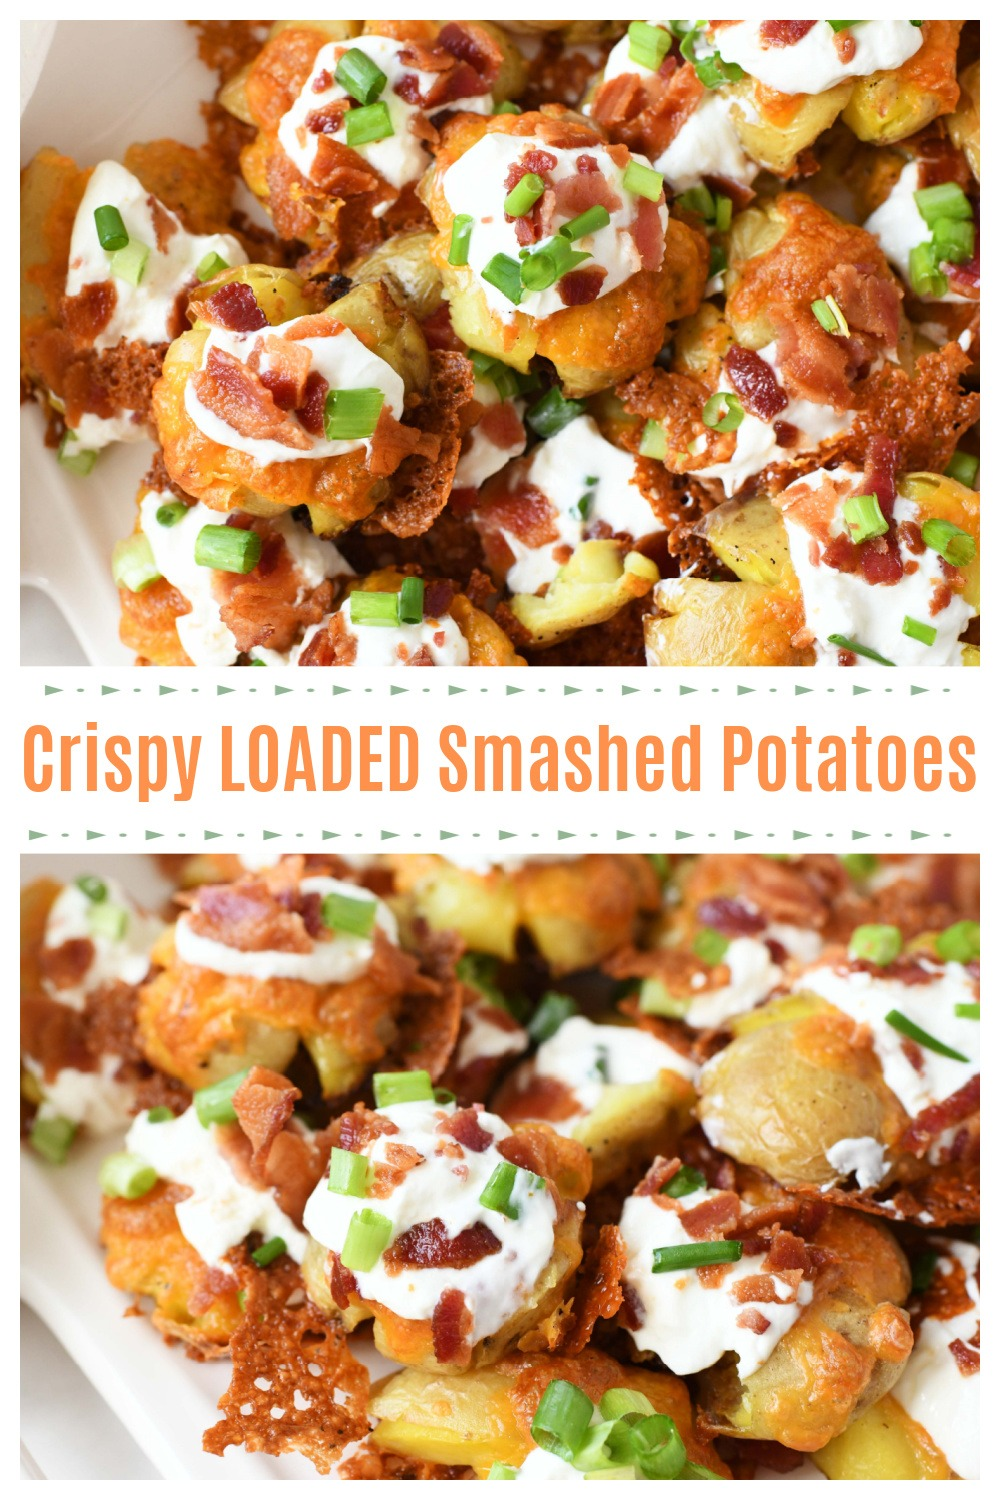 Easy Oven Baked Loaded Smashed Baby Potatoes